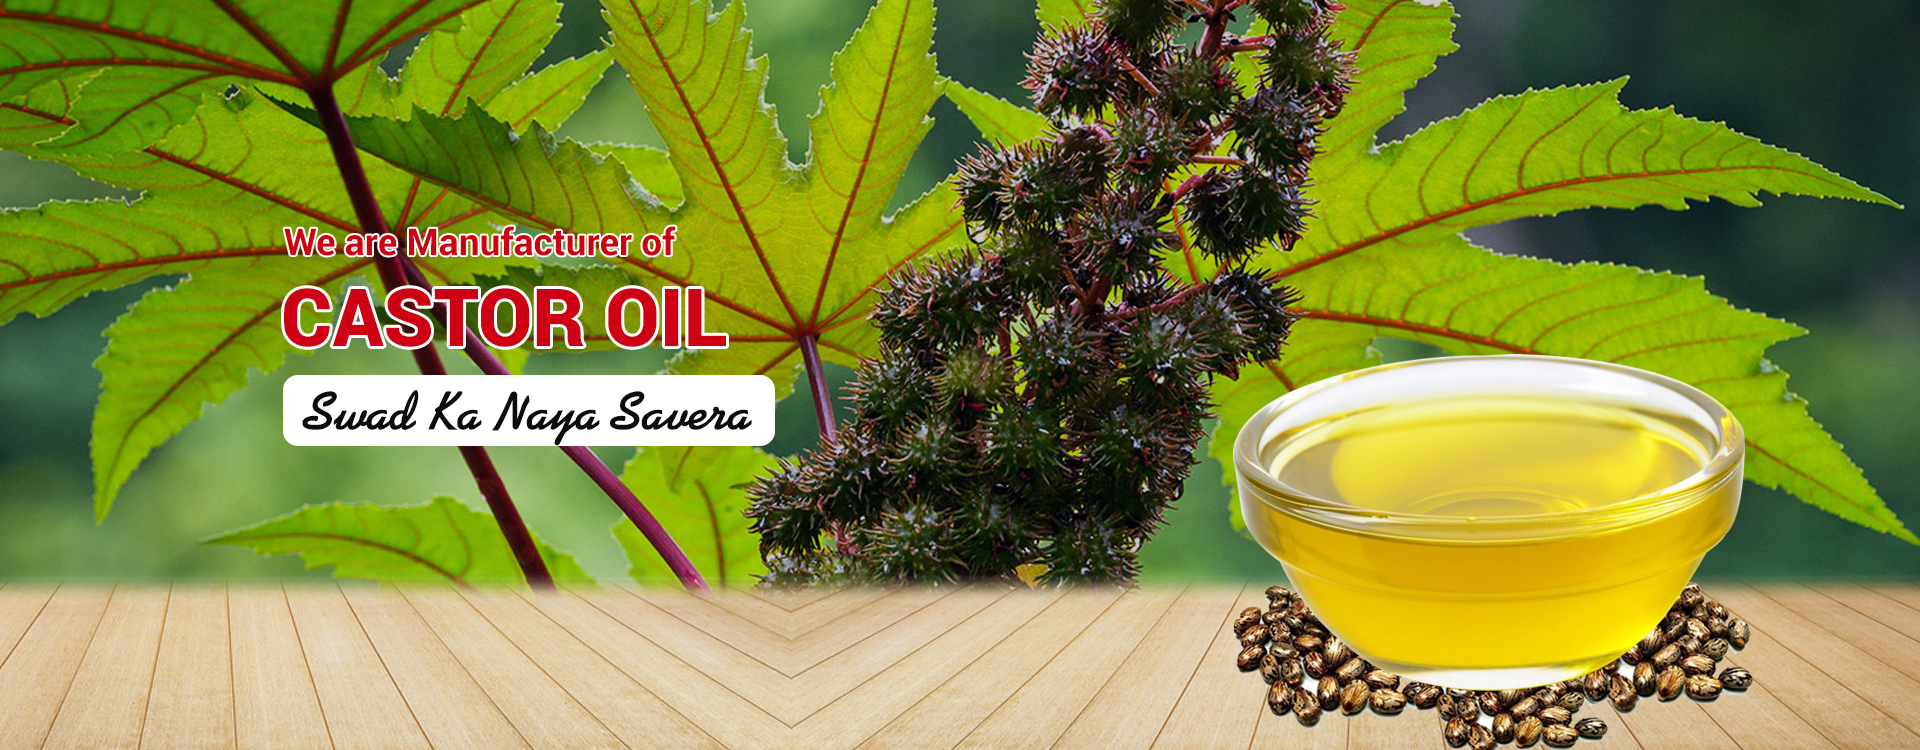 We are Leading Exporter of Castor Oil in India